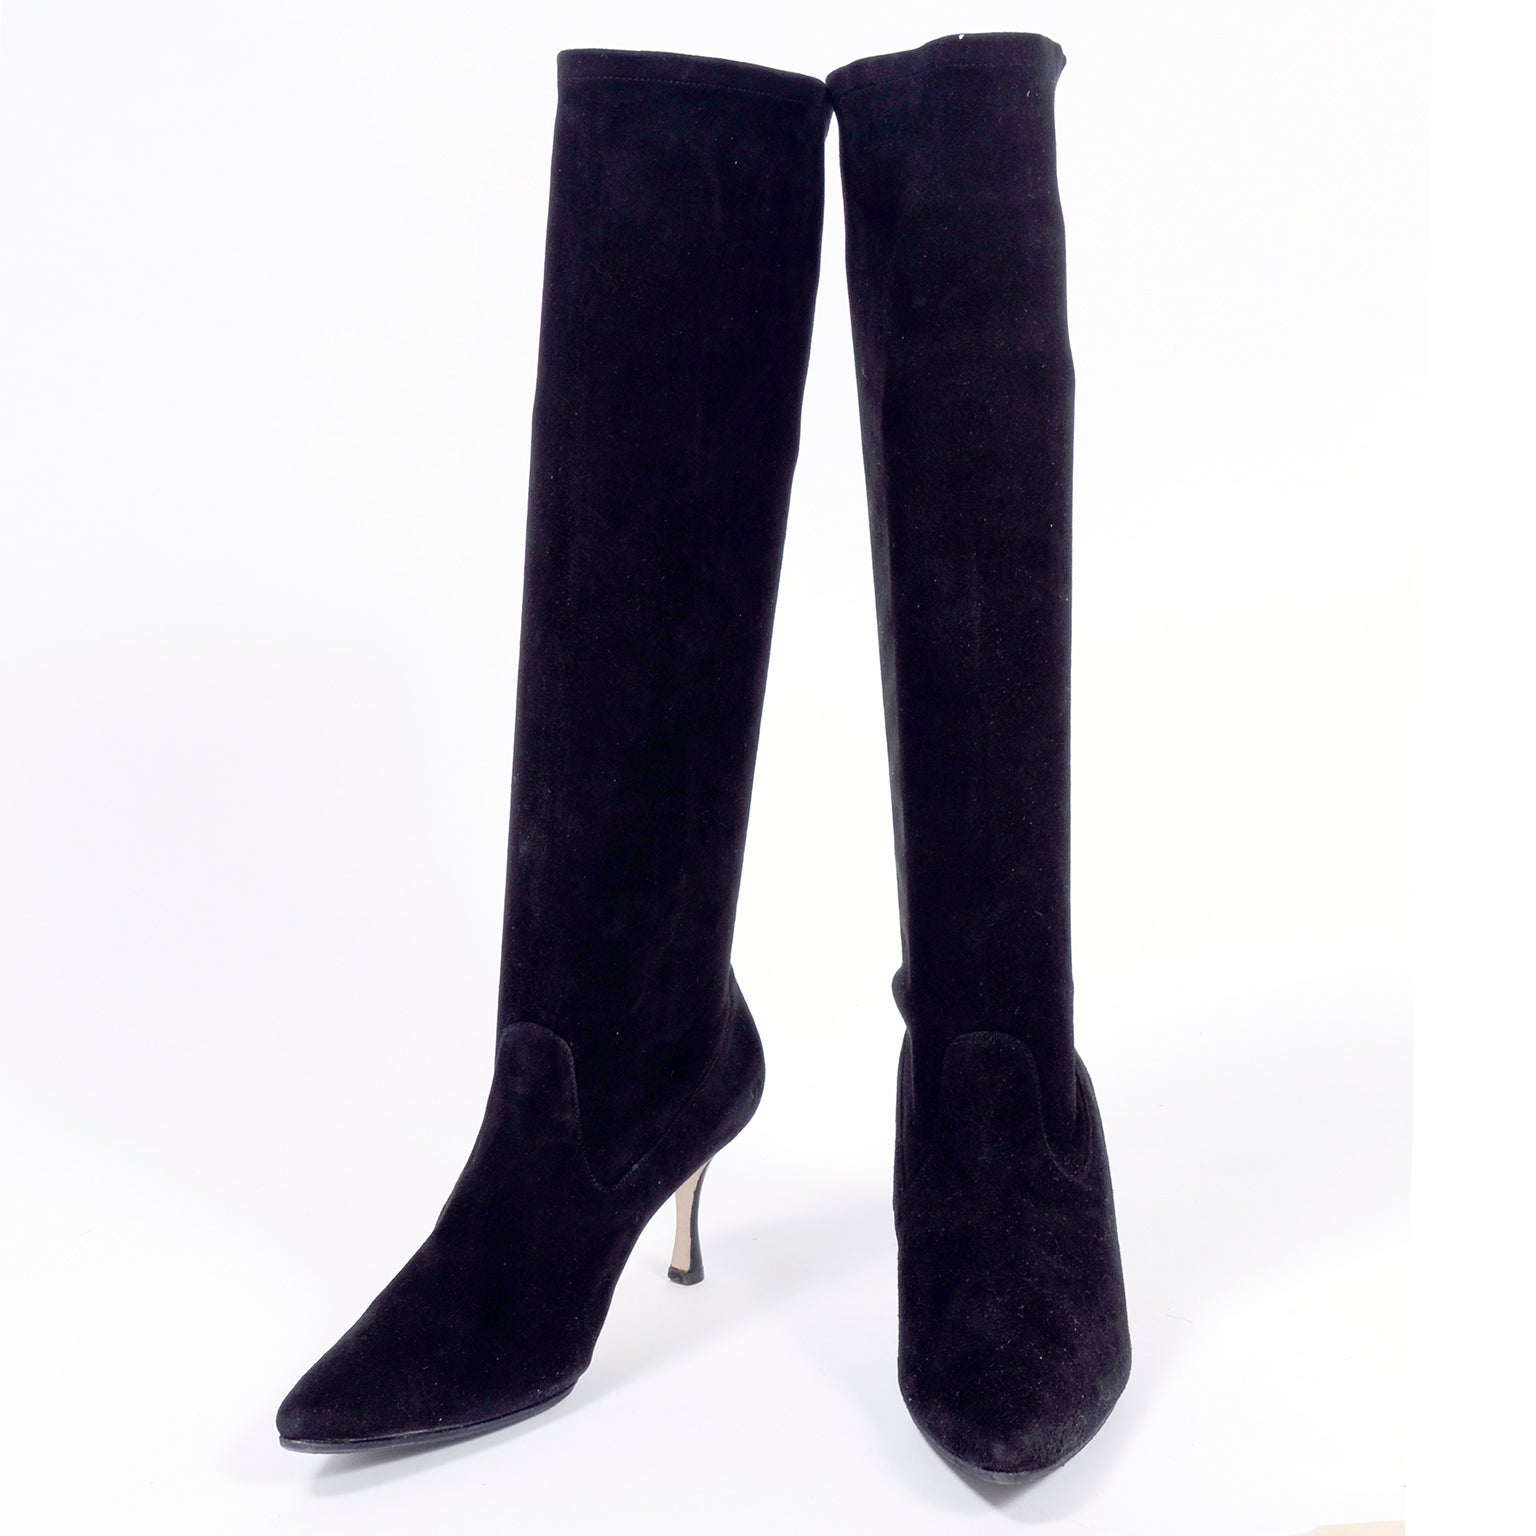 f096c3d1e93cc Manolo Blahnik Boots in Black Suede Knee Length With 3